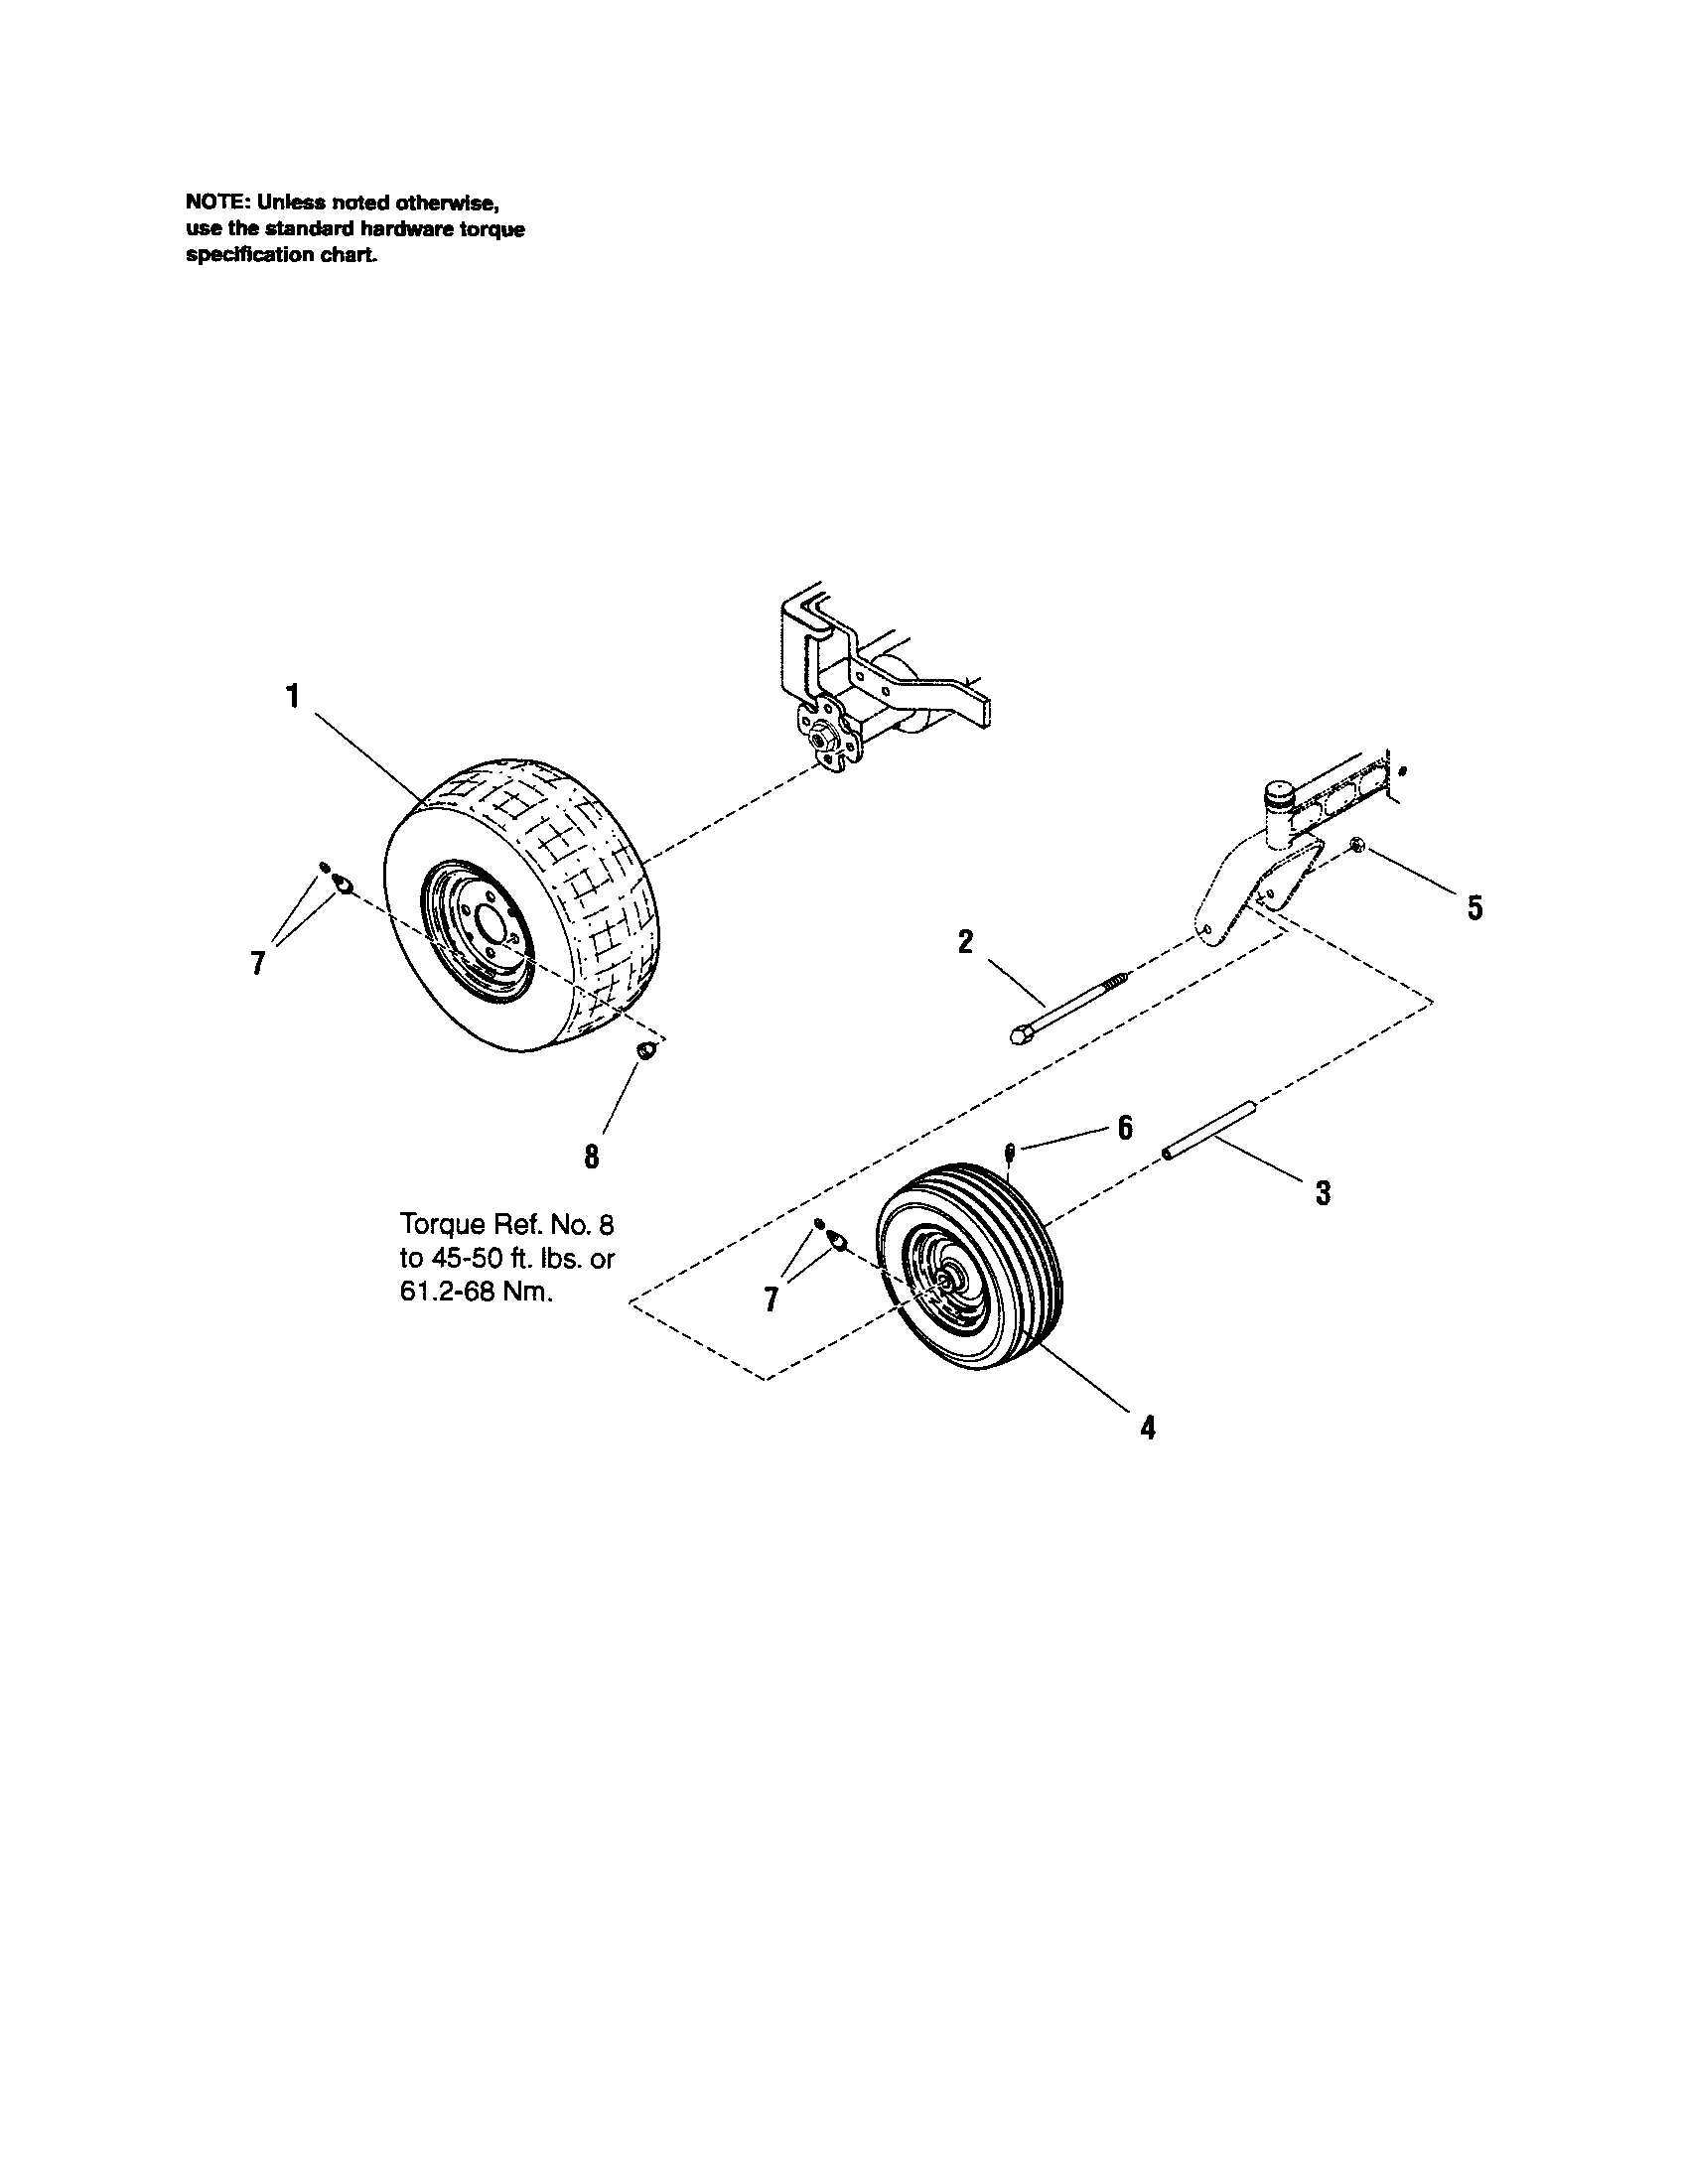 Looking for Craftsman model 107277860 rear-engine riding